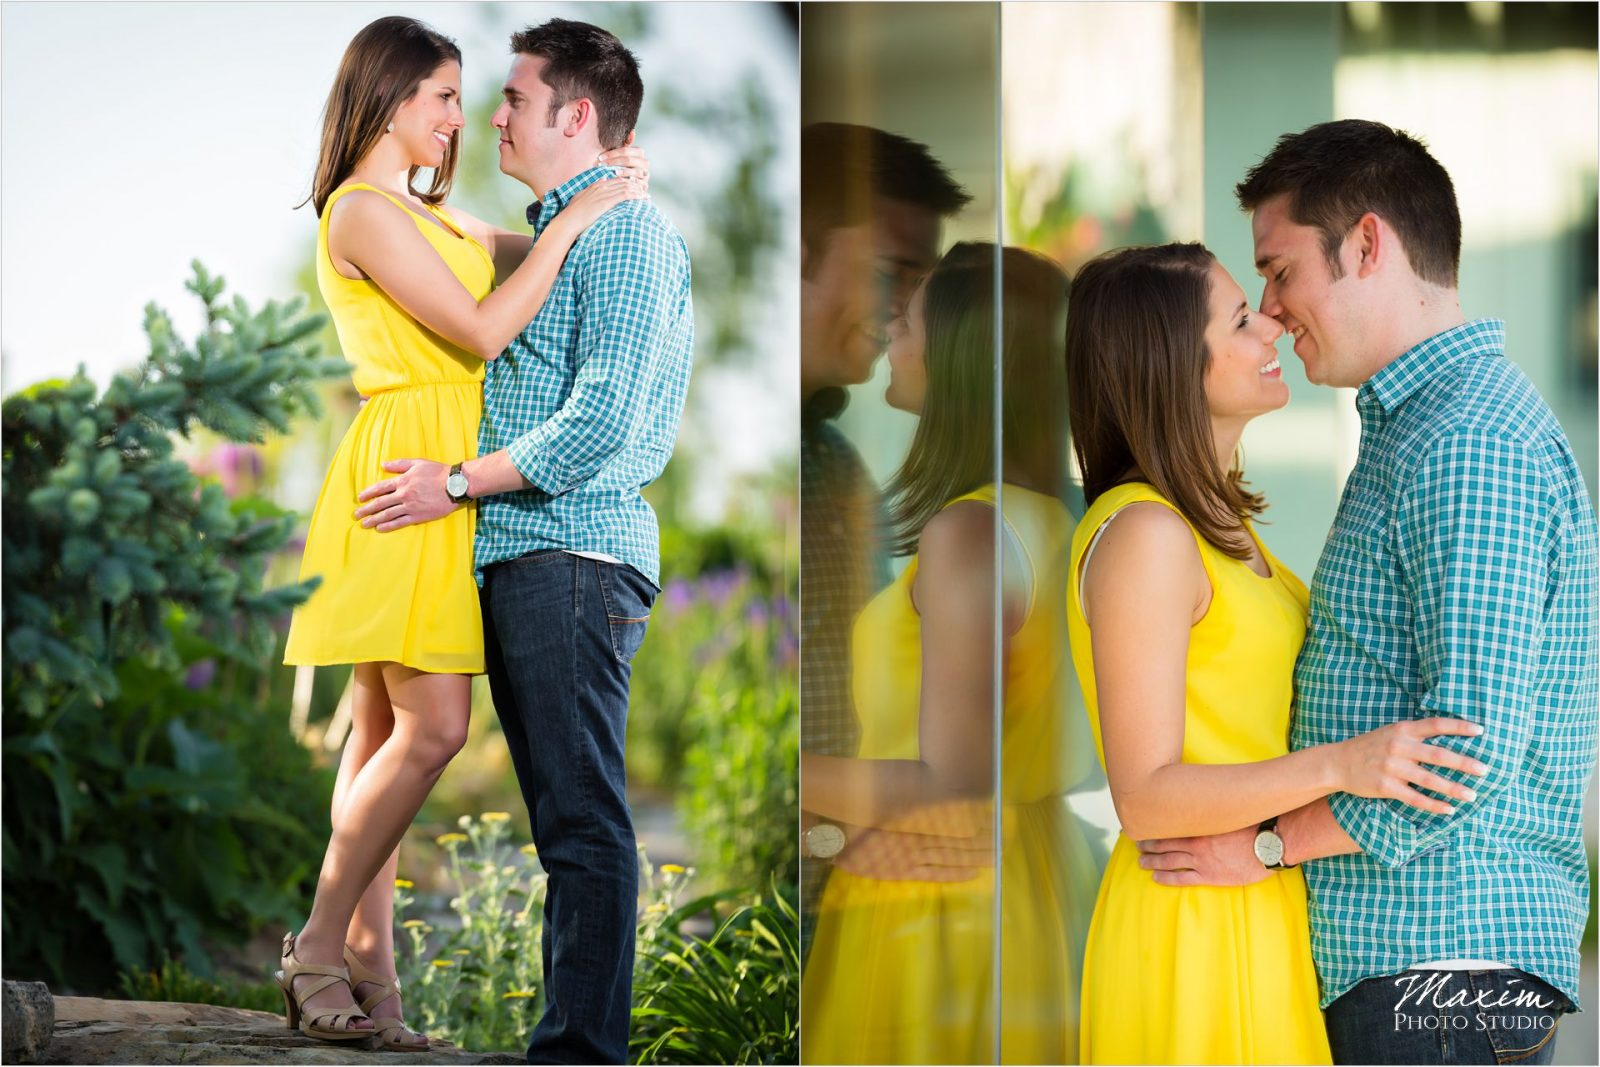 Cox Arboretum Dayton Ohio Engagement yellow dress reflection